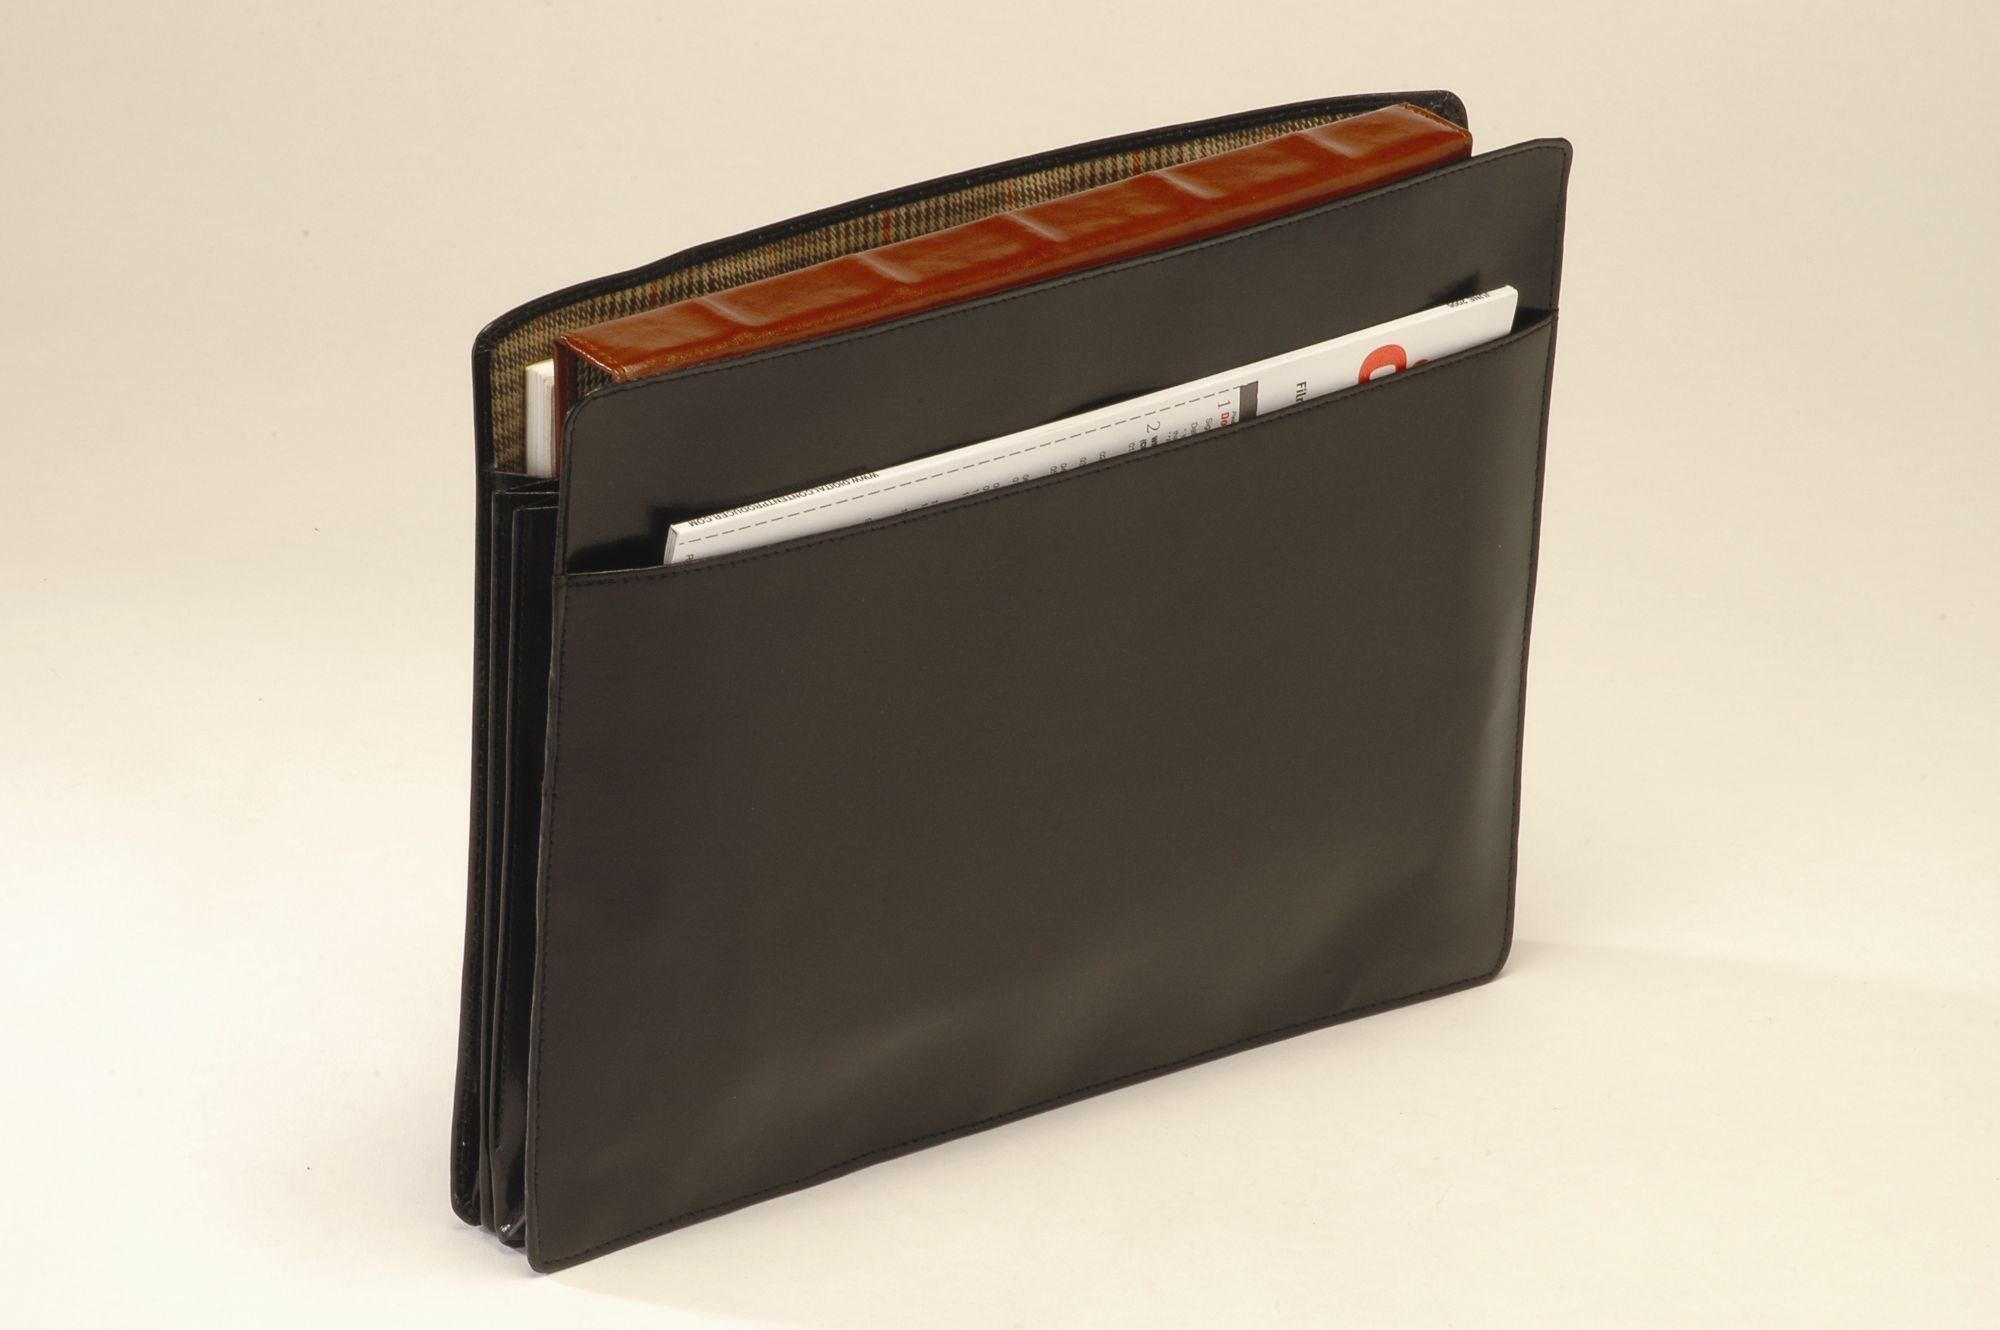 another chance a4060 f0a02 Leather Document Folio / Holder - Buy Leather Document Holder Product on  Alibaba.com